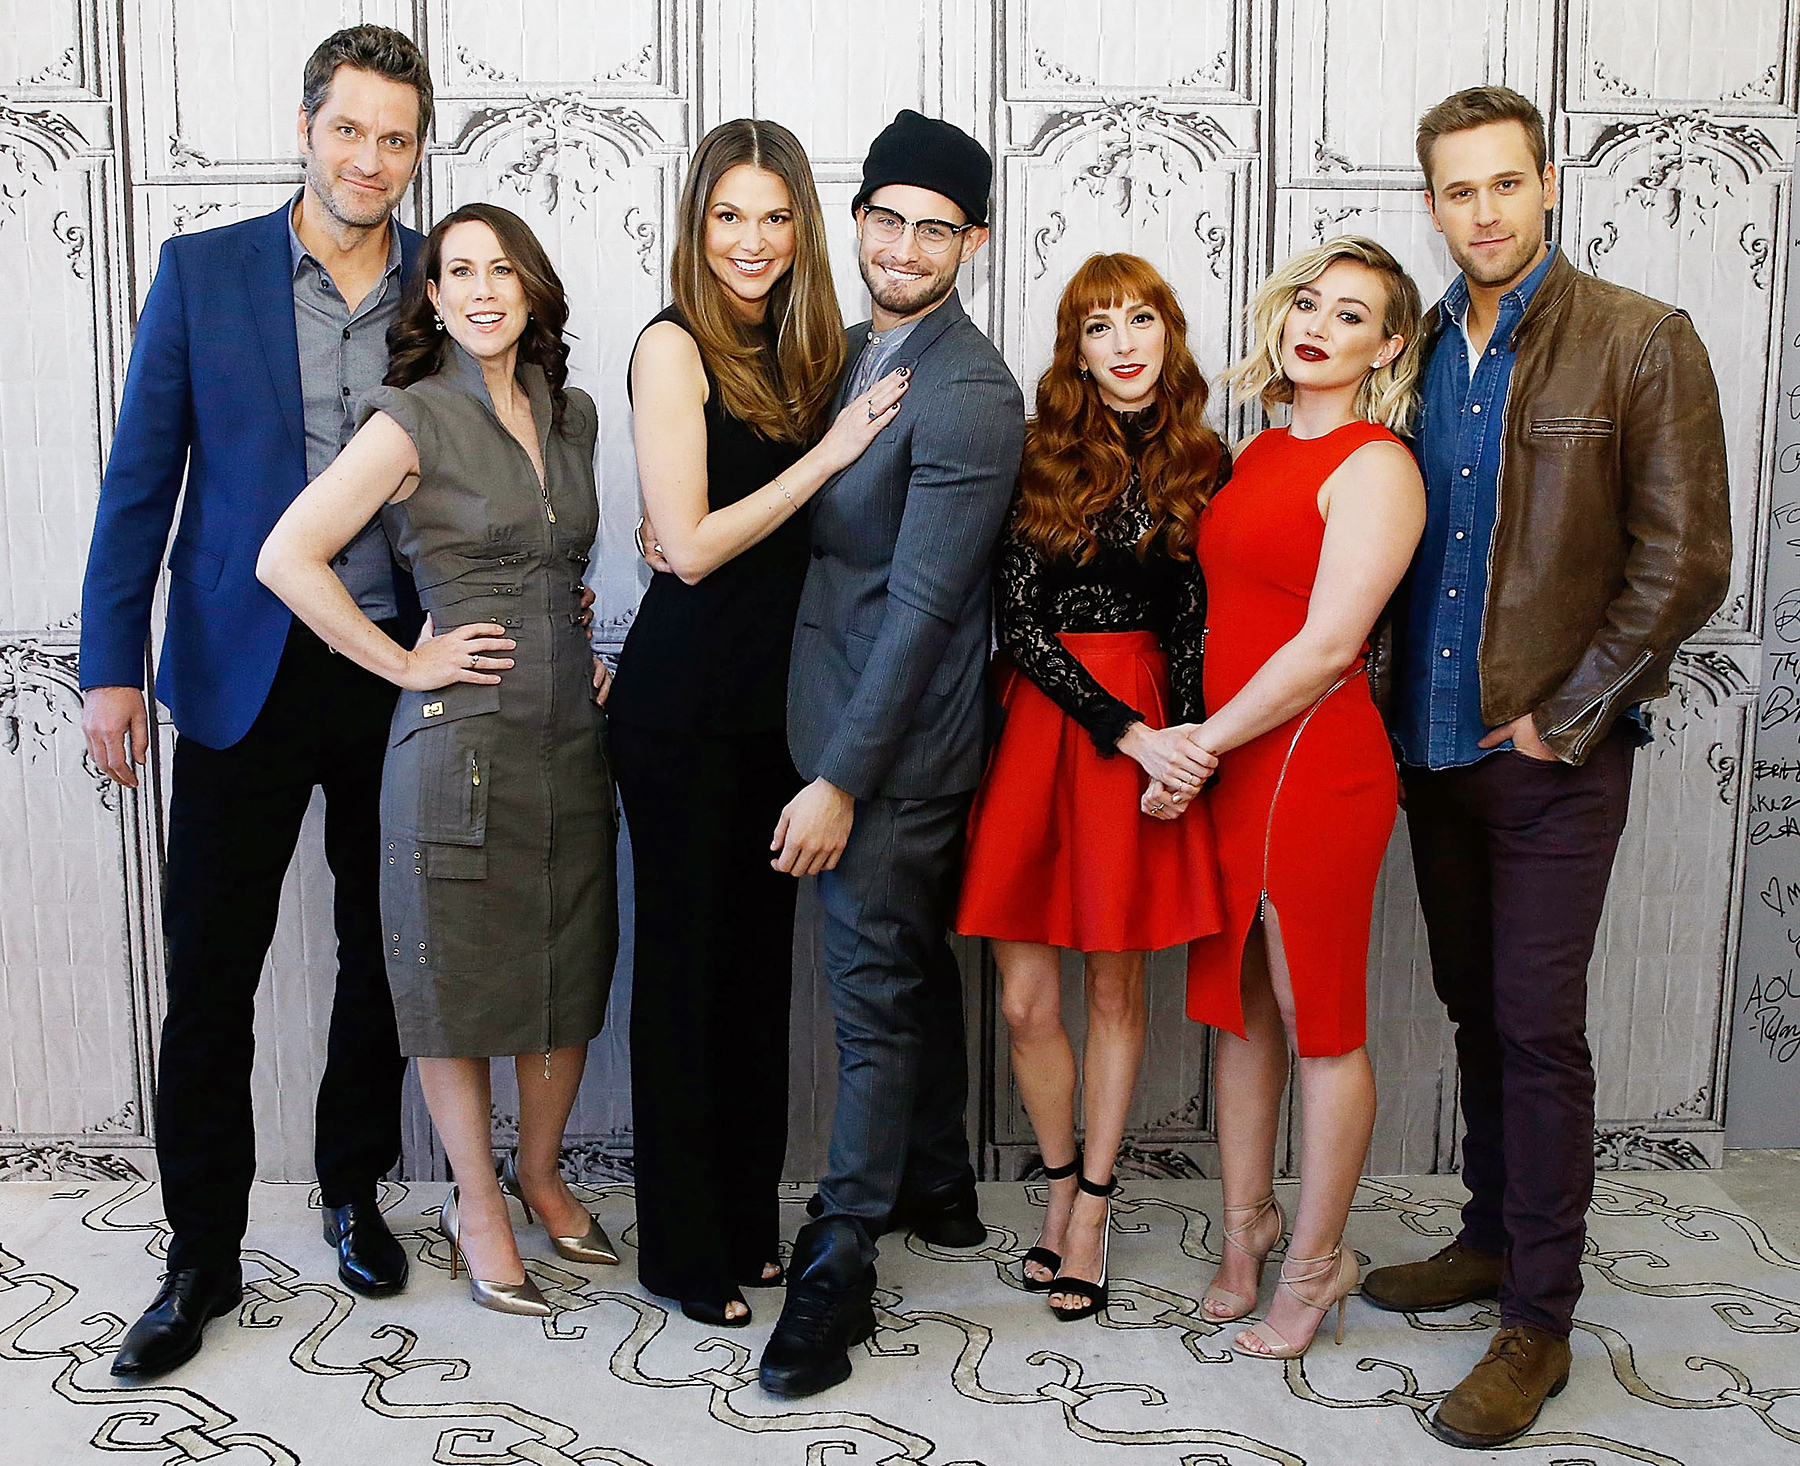 younger season 4 is near behind the scenes moments of the cast